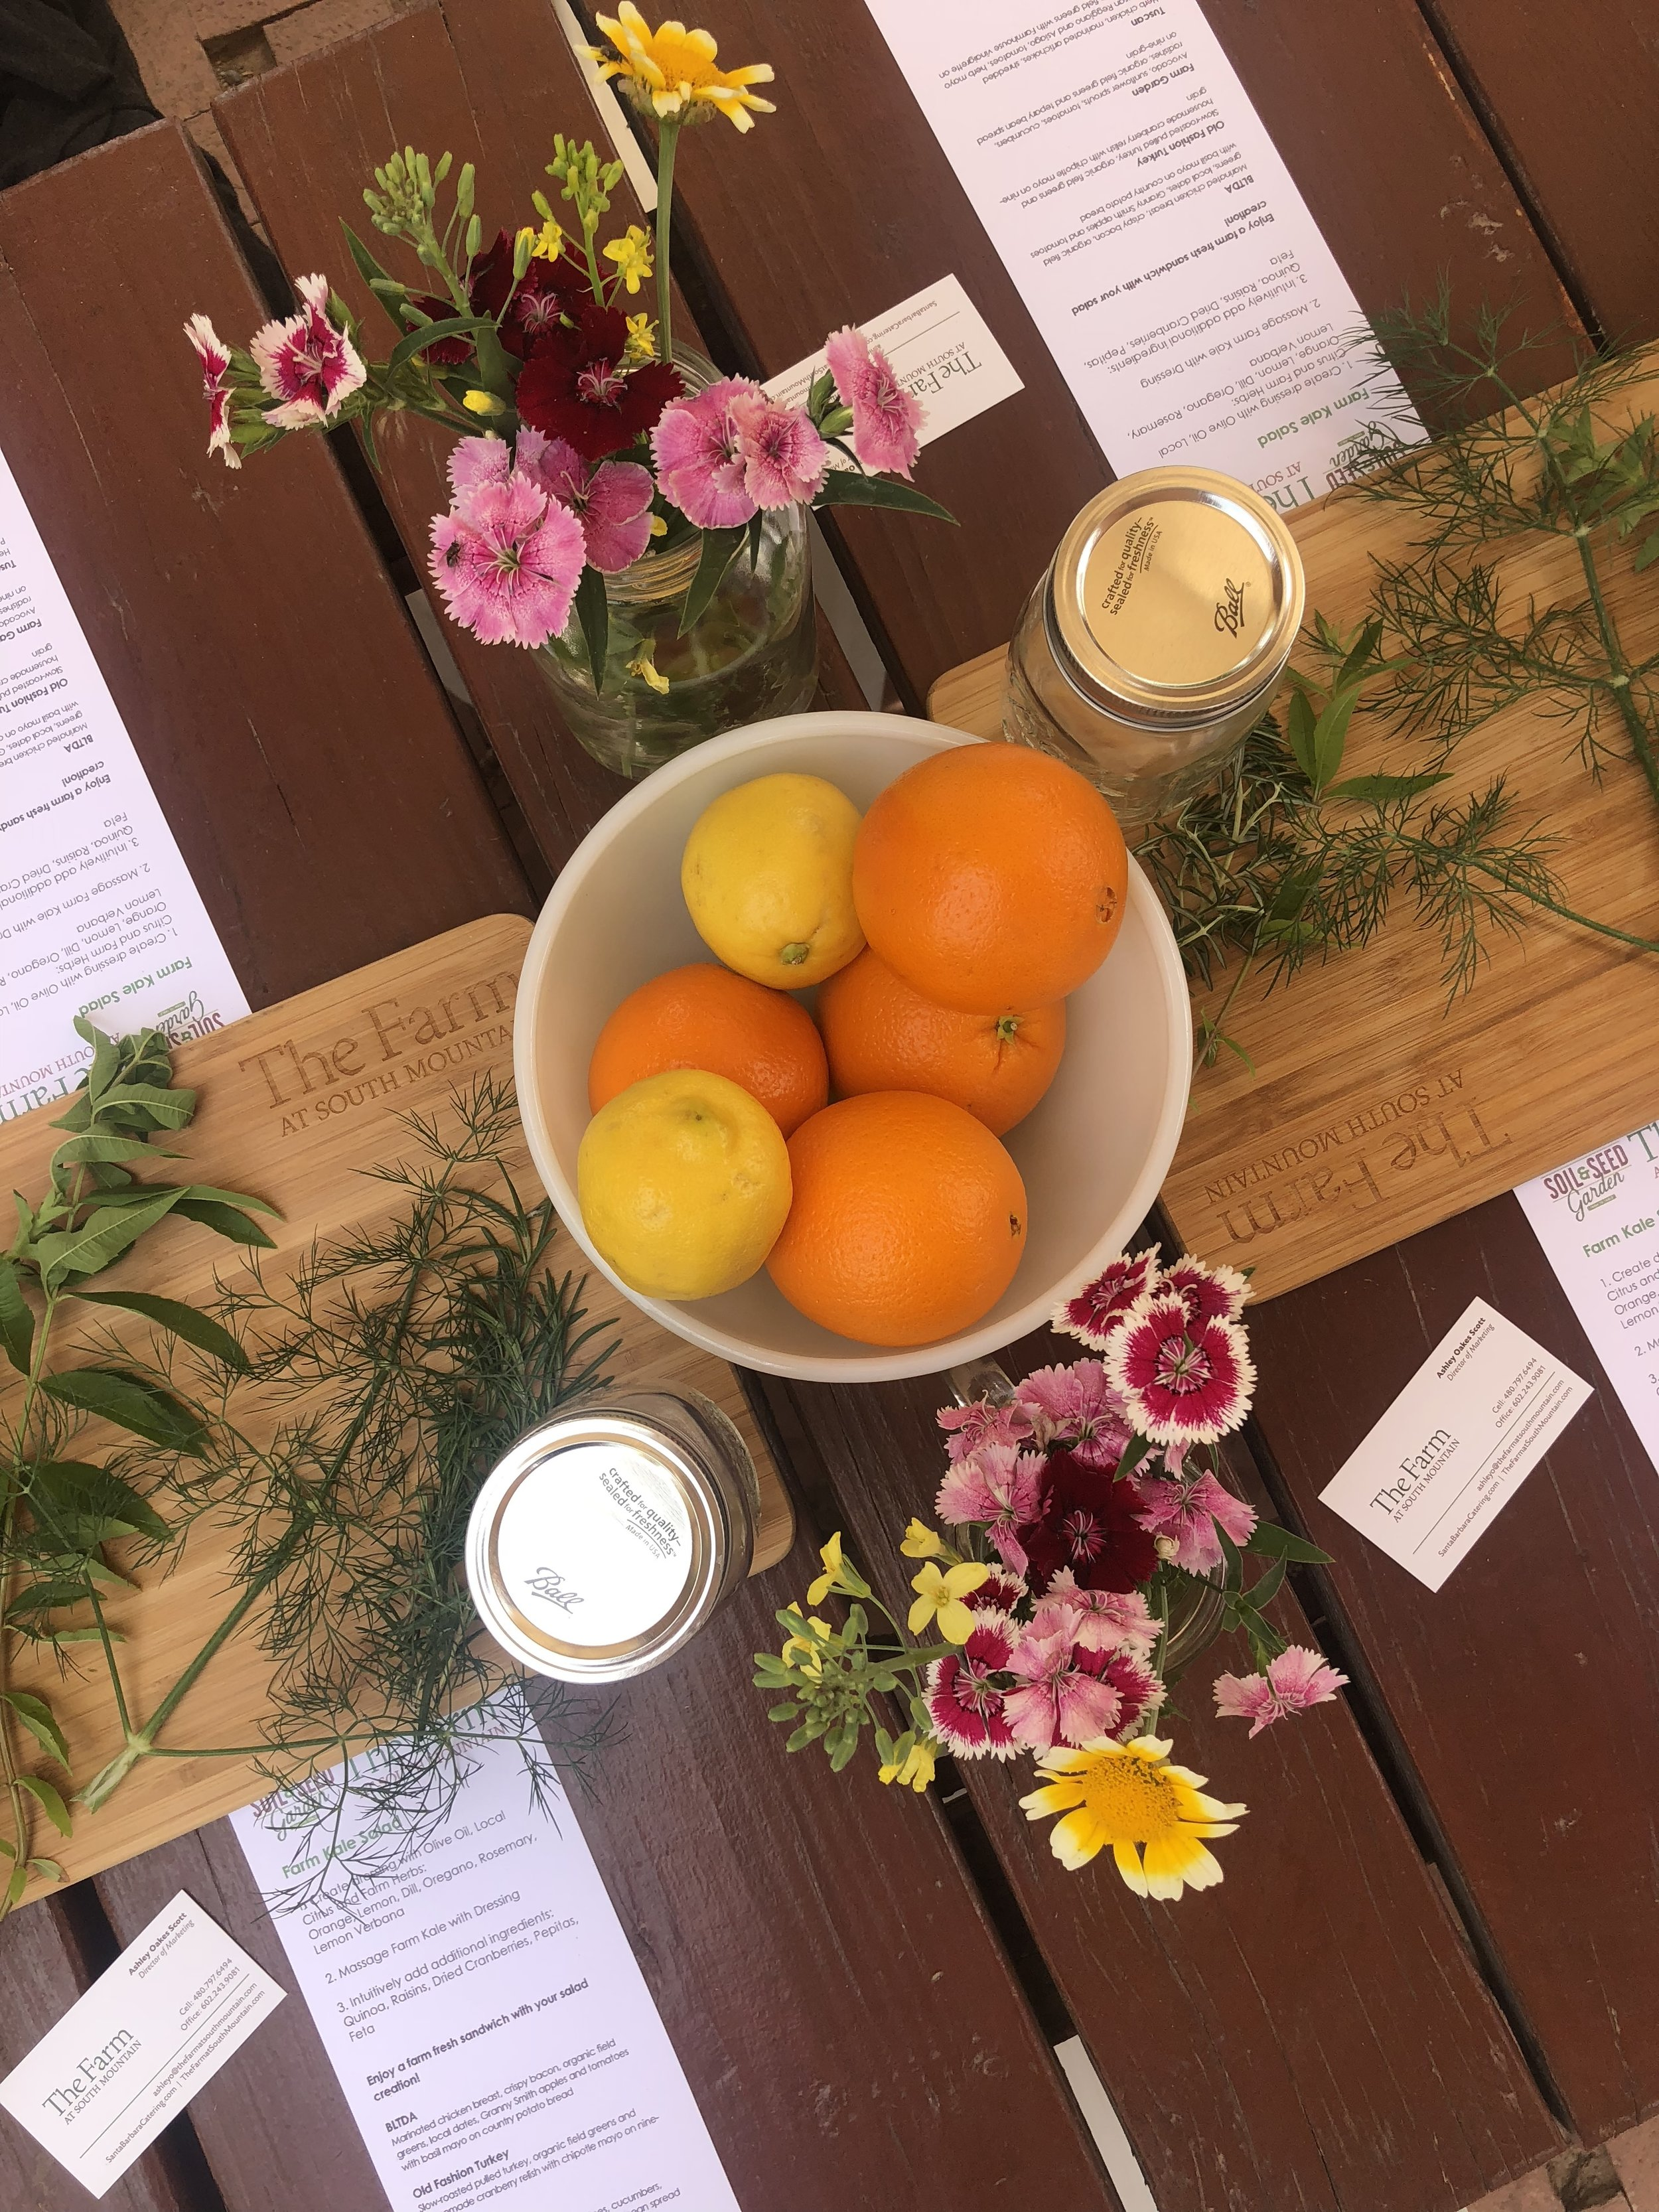 The Farm - an amazing stop on the fresh Foodie Trail